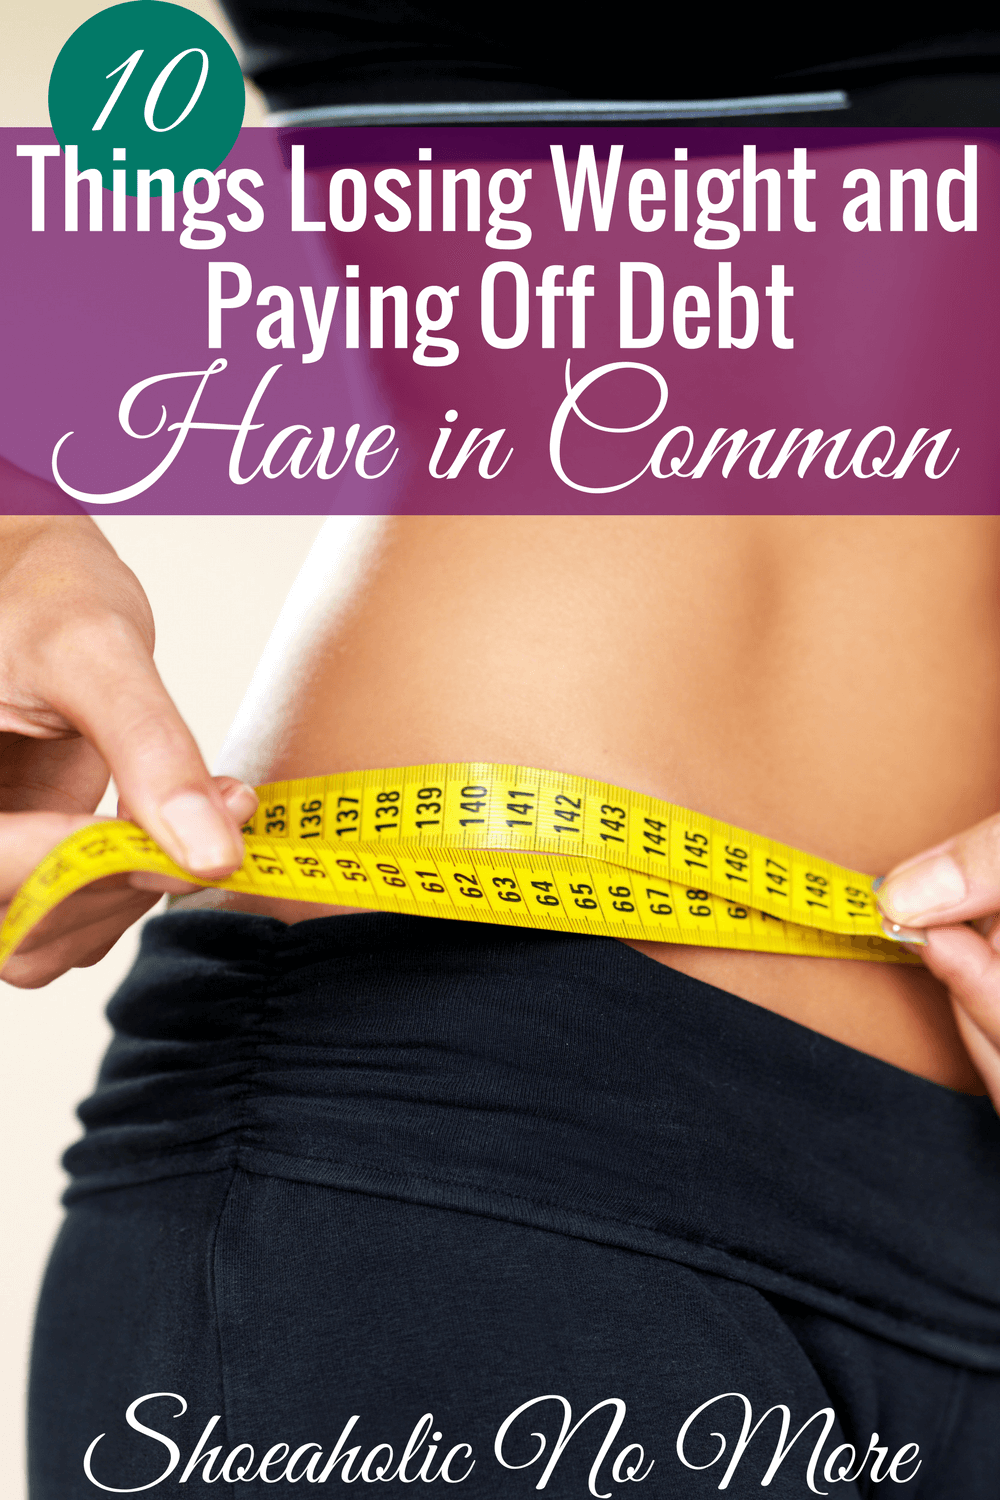 Losing weight and paying off debt are hard things to do. I love how this blogger broke it down to show all the things they have in common.